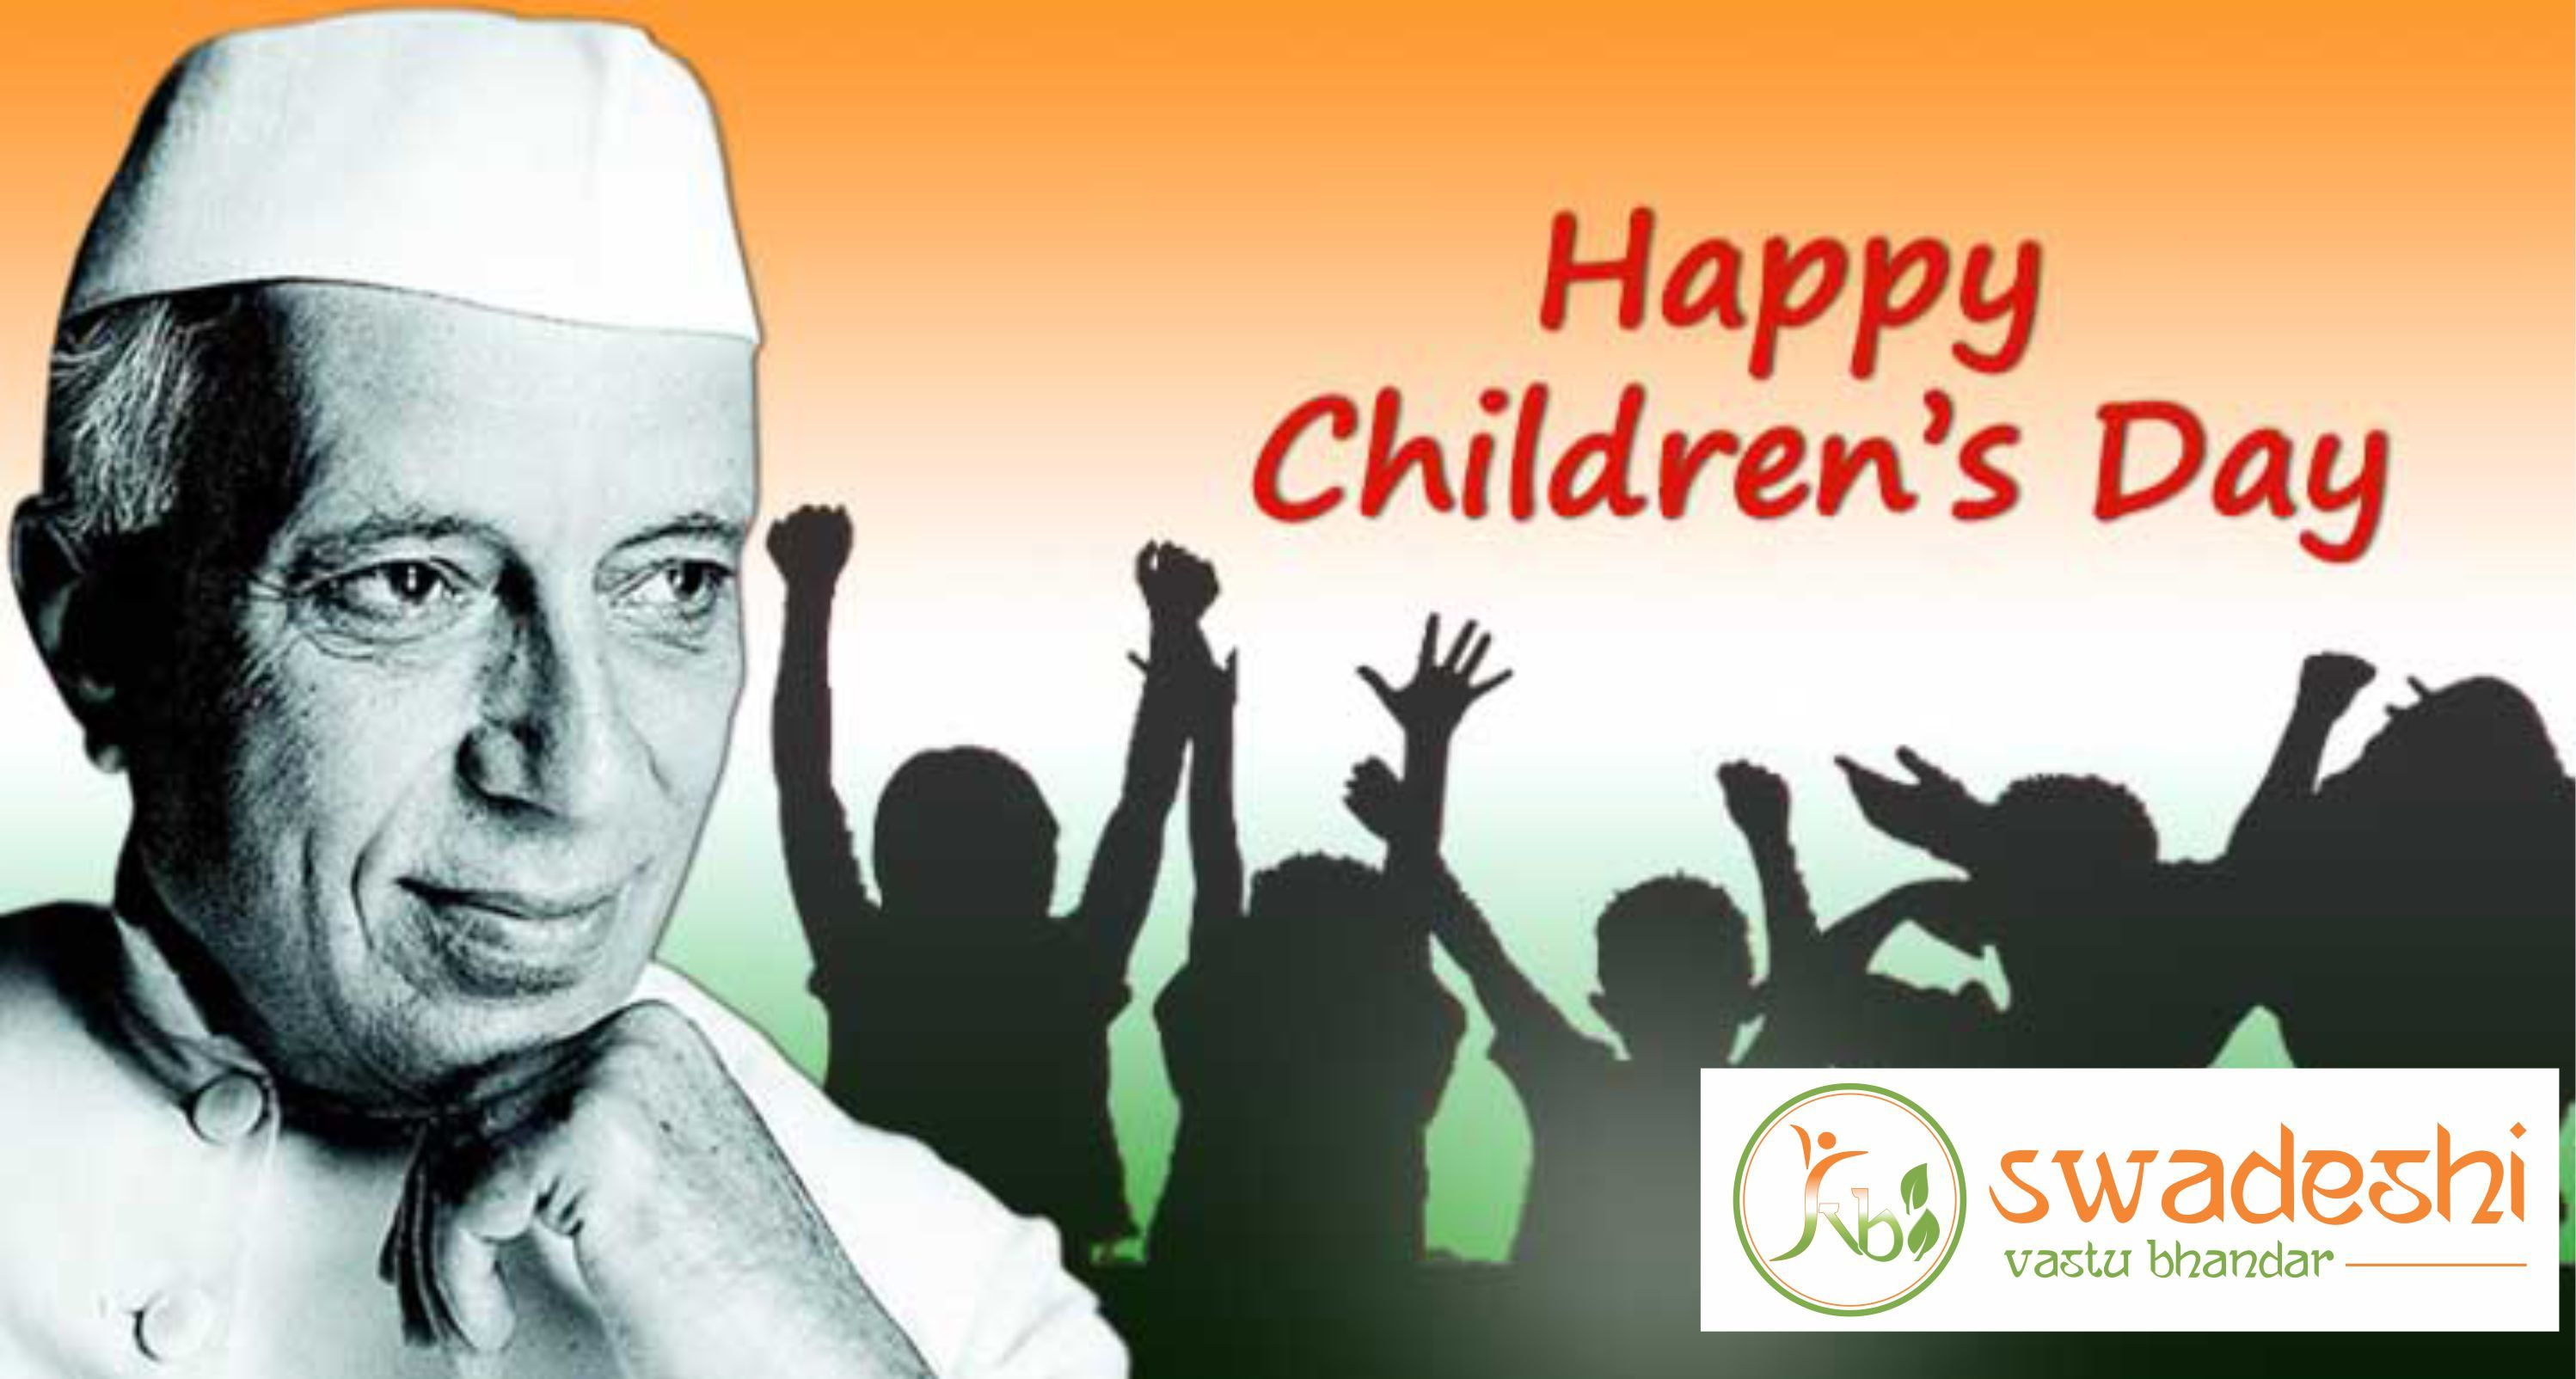 Greetings To All On The Occasion Of Childrensday Children Are The